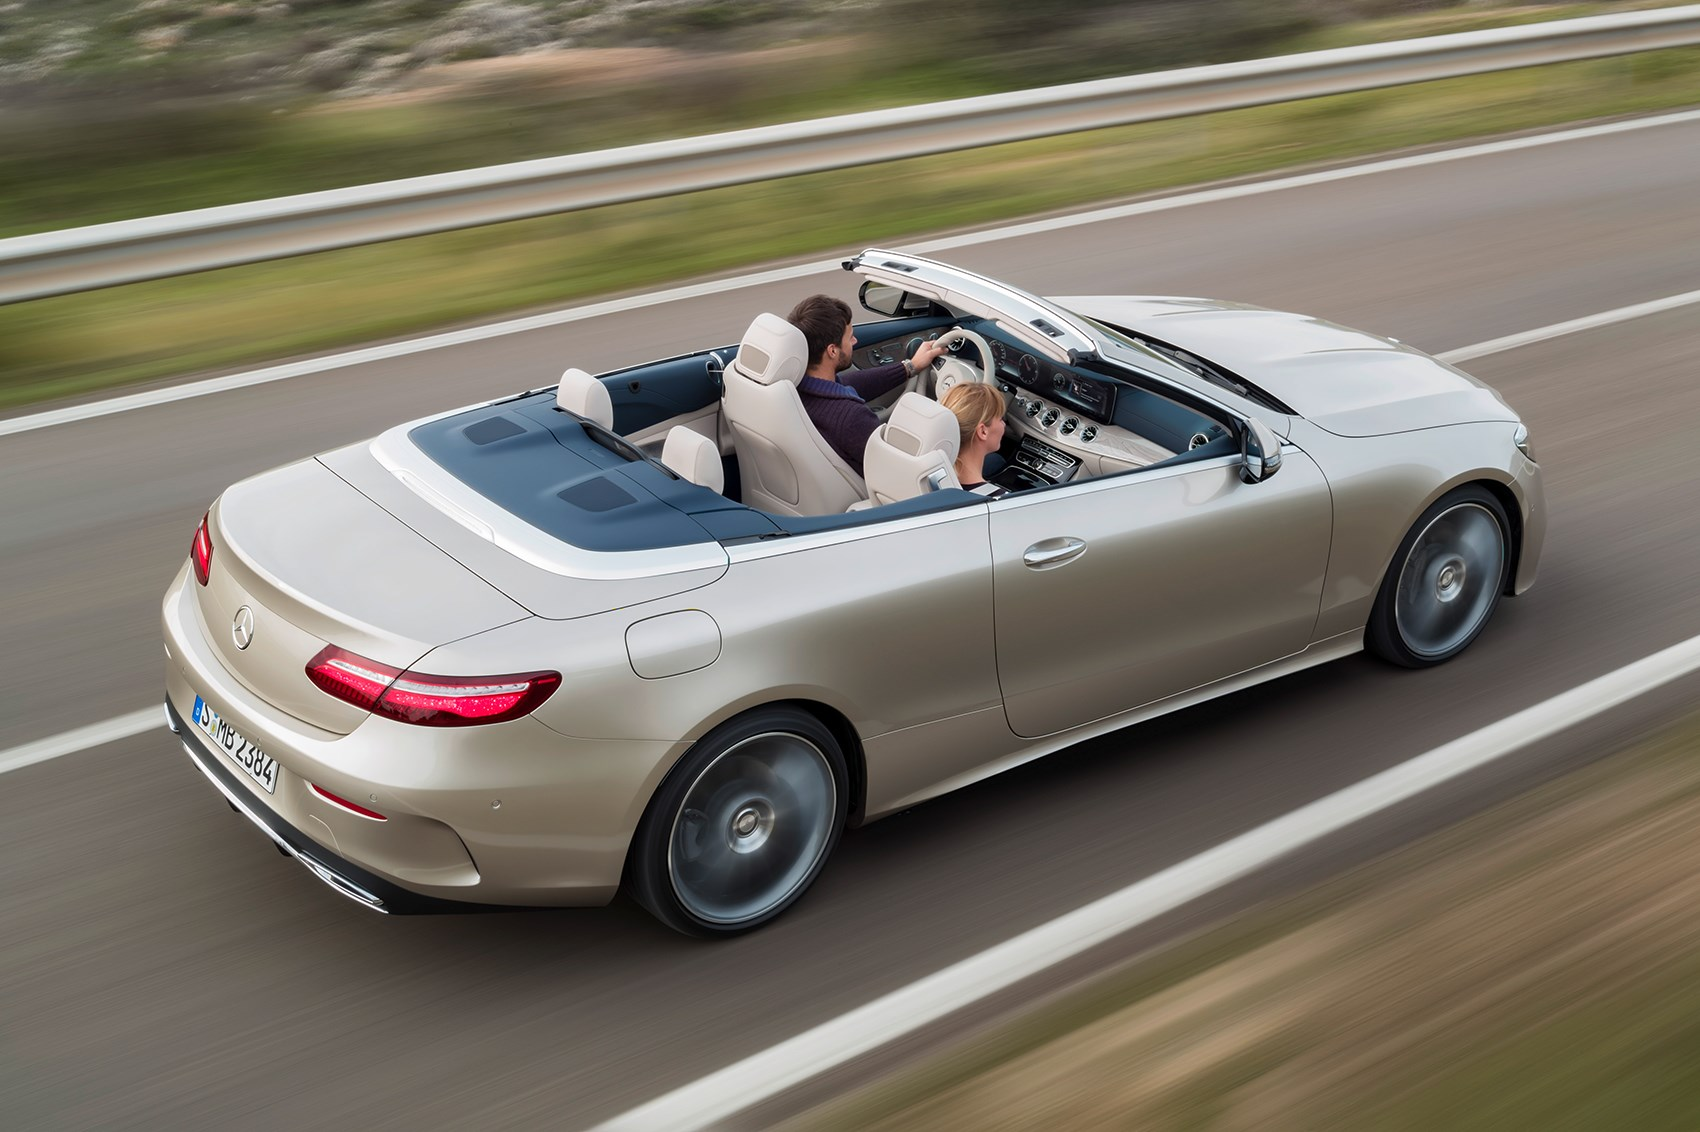 merc blows the roof off the mercedes e class cabriolet at geneva 2017 car magazine. Black Bedroom Furniture Sets. Home Design Ideas